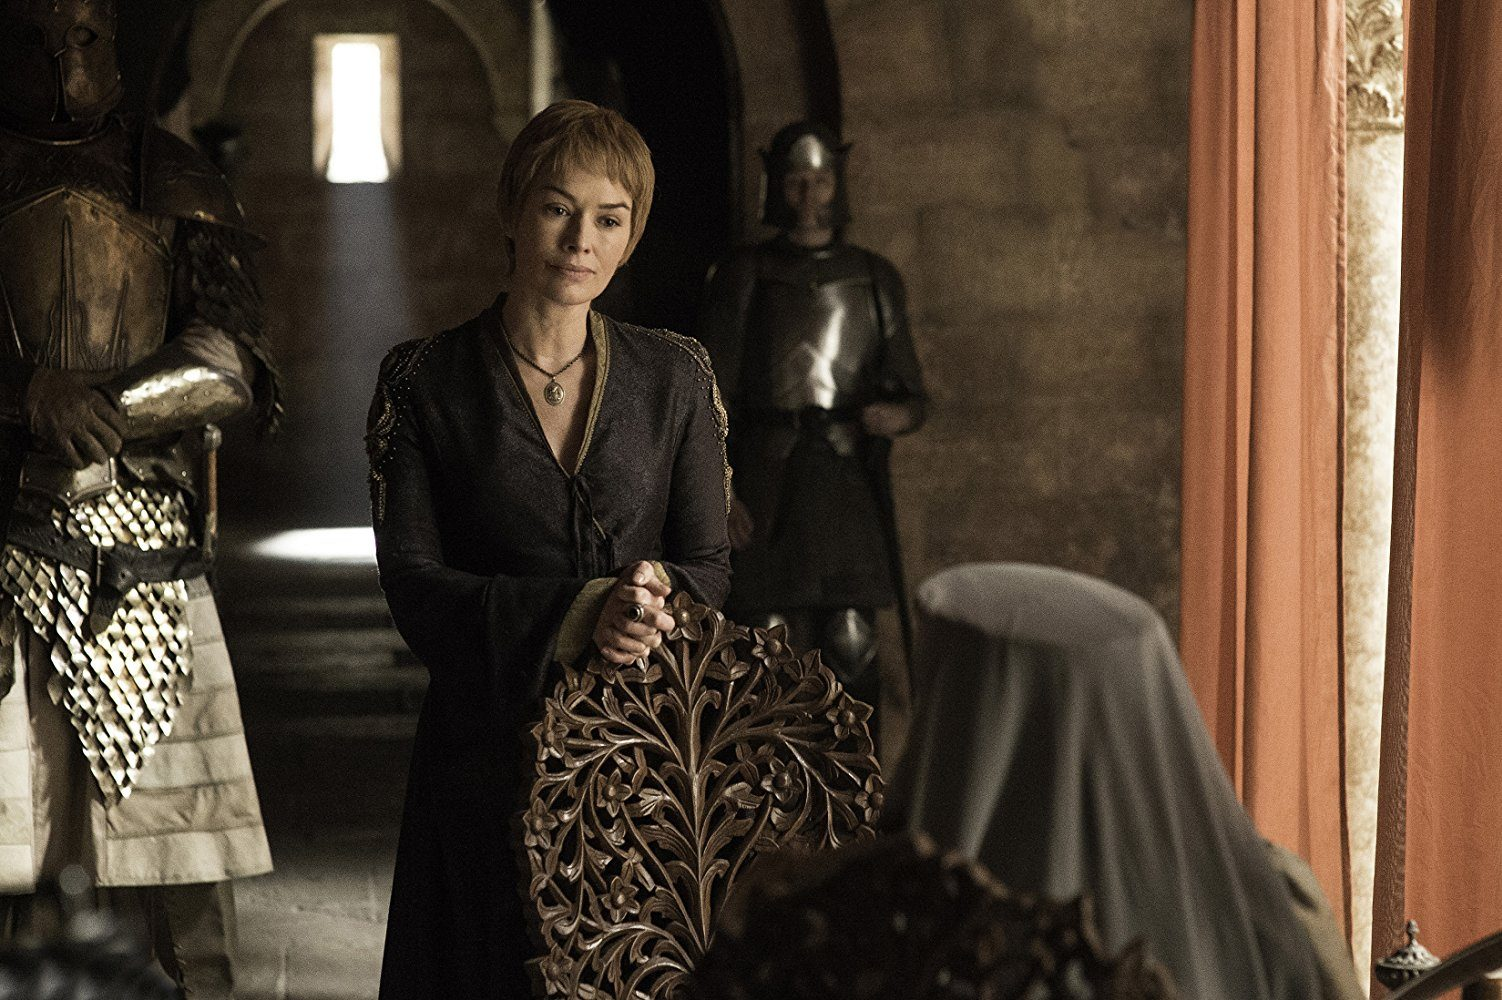 Cersei speaks to someone while standing next to armed guards.